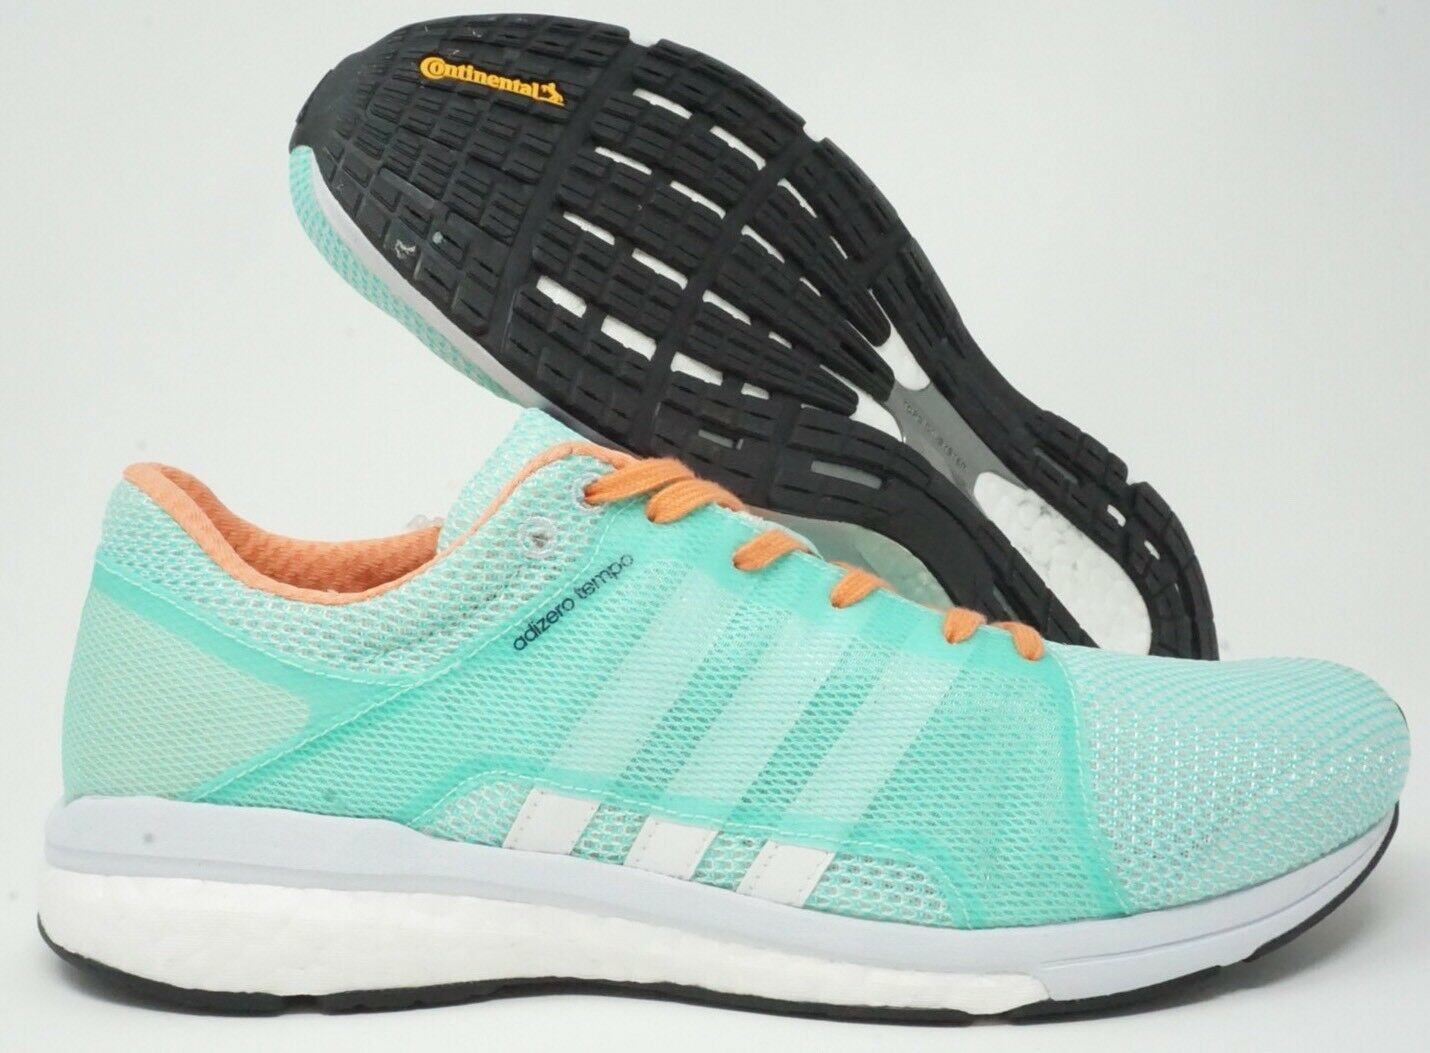 Adidas Adizero Tempo 8 Womens Running shoes Green White Clear Grey Size 10